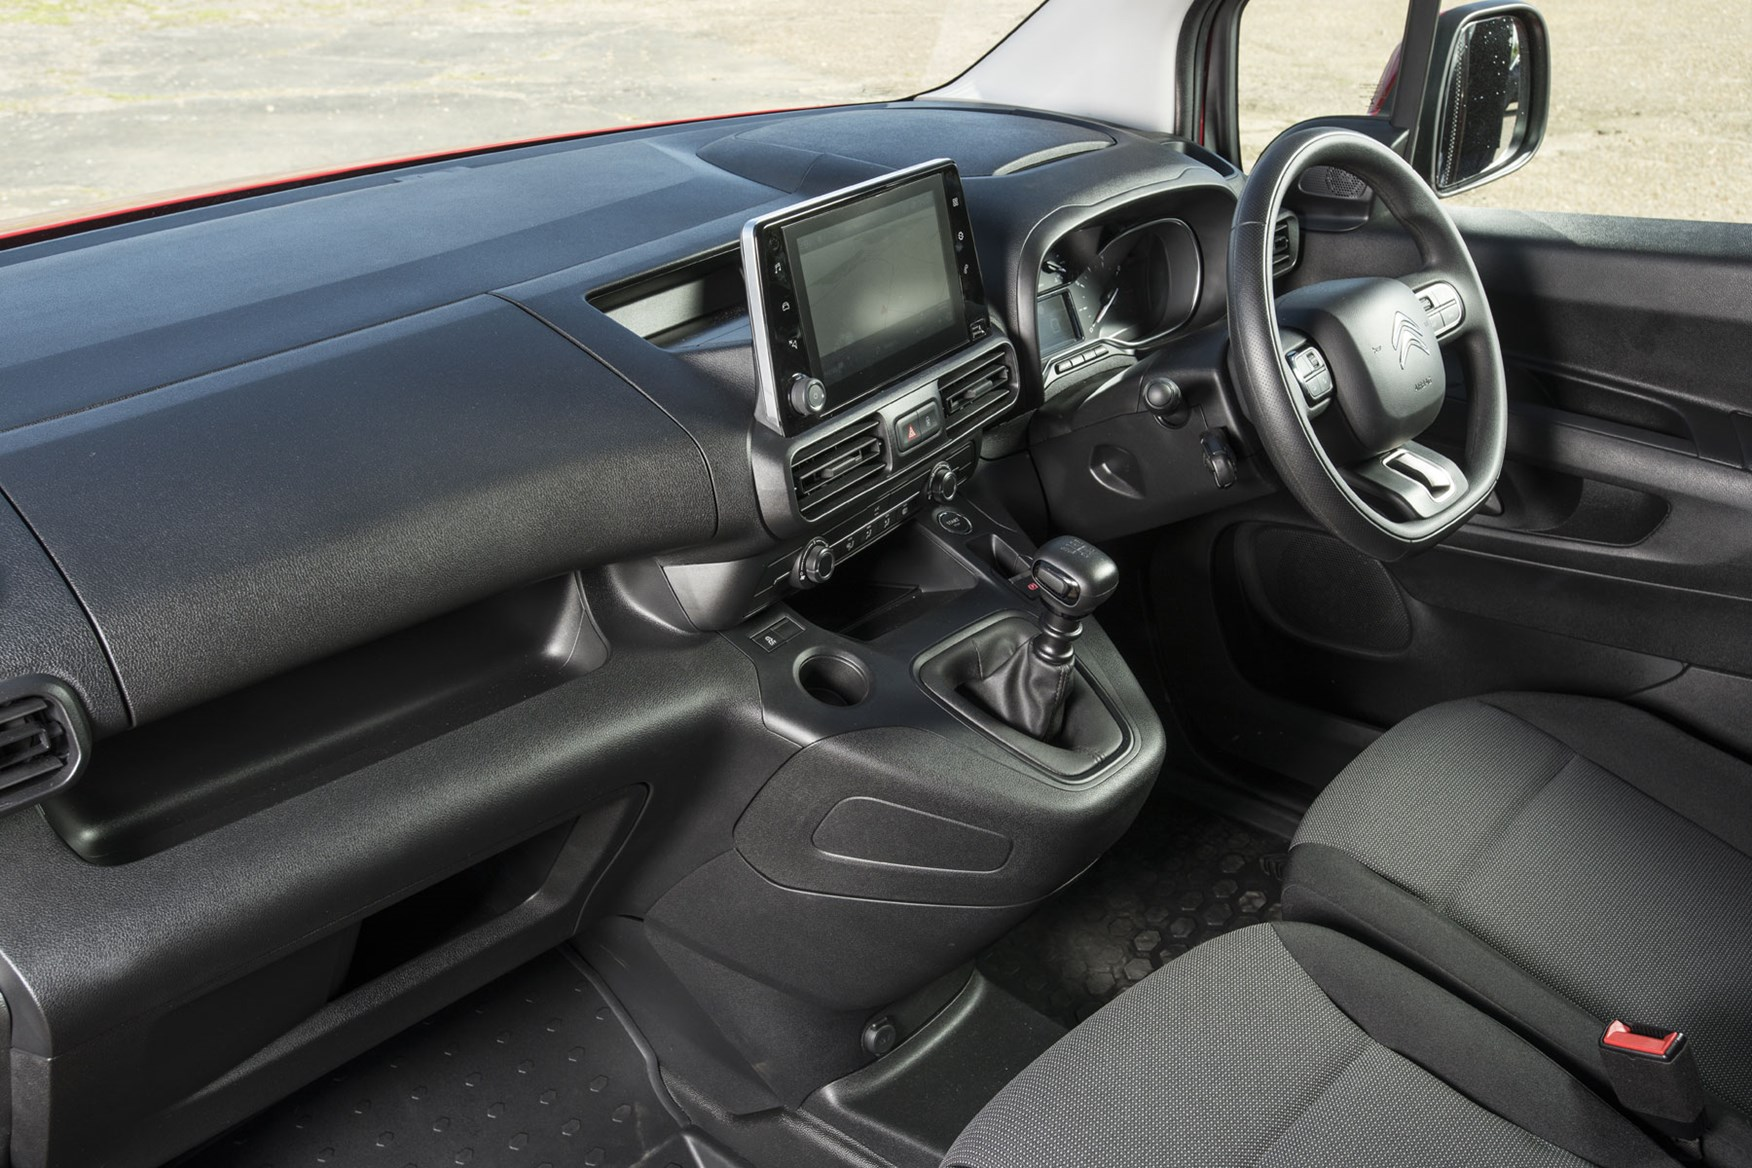 Citroen Berlingo van review - 2019 model, cab interior